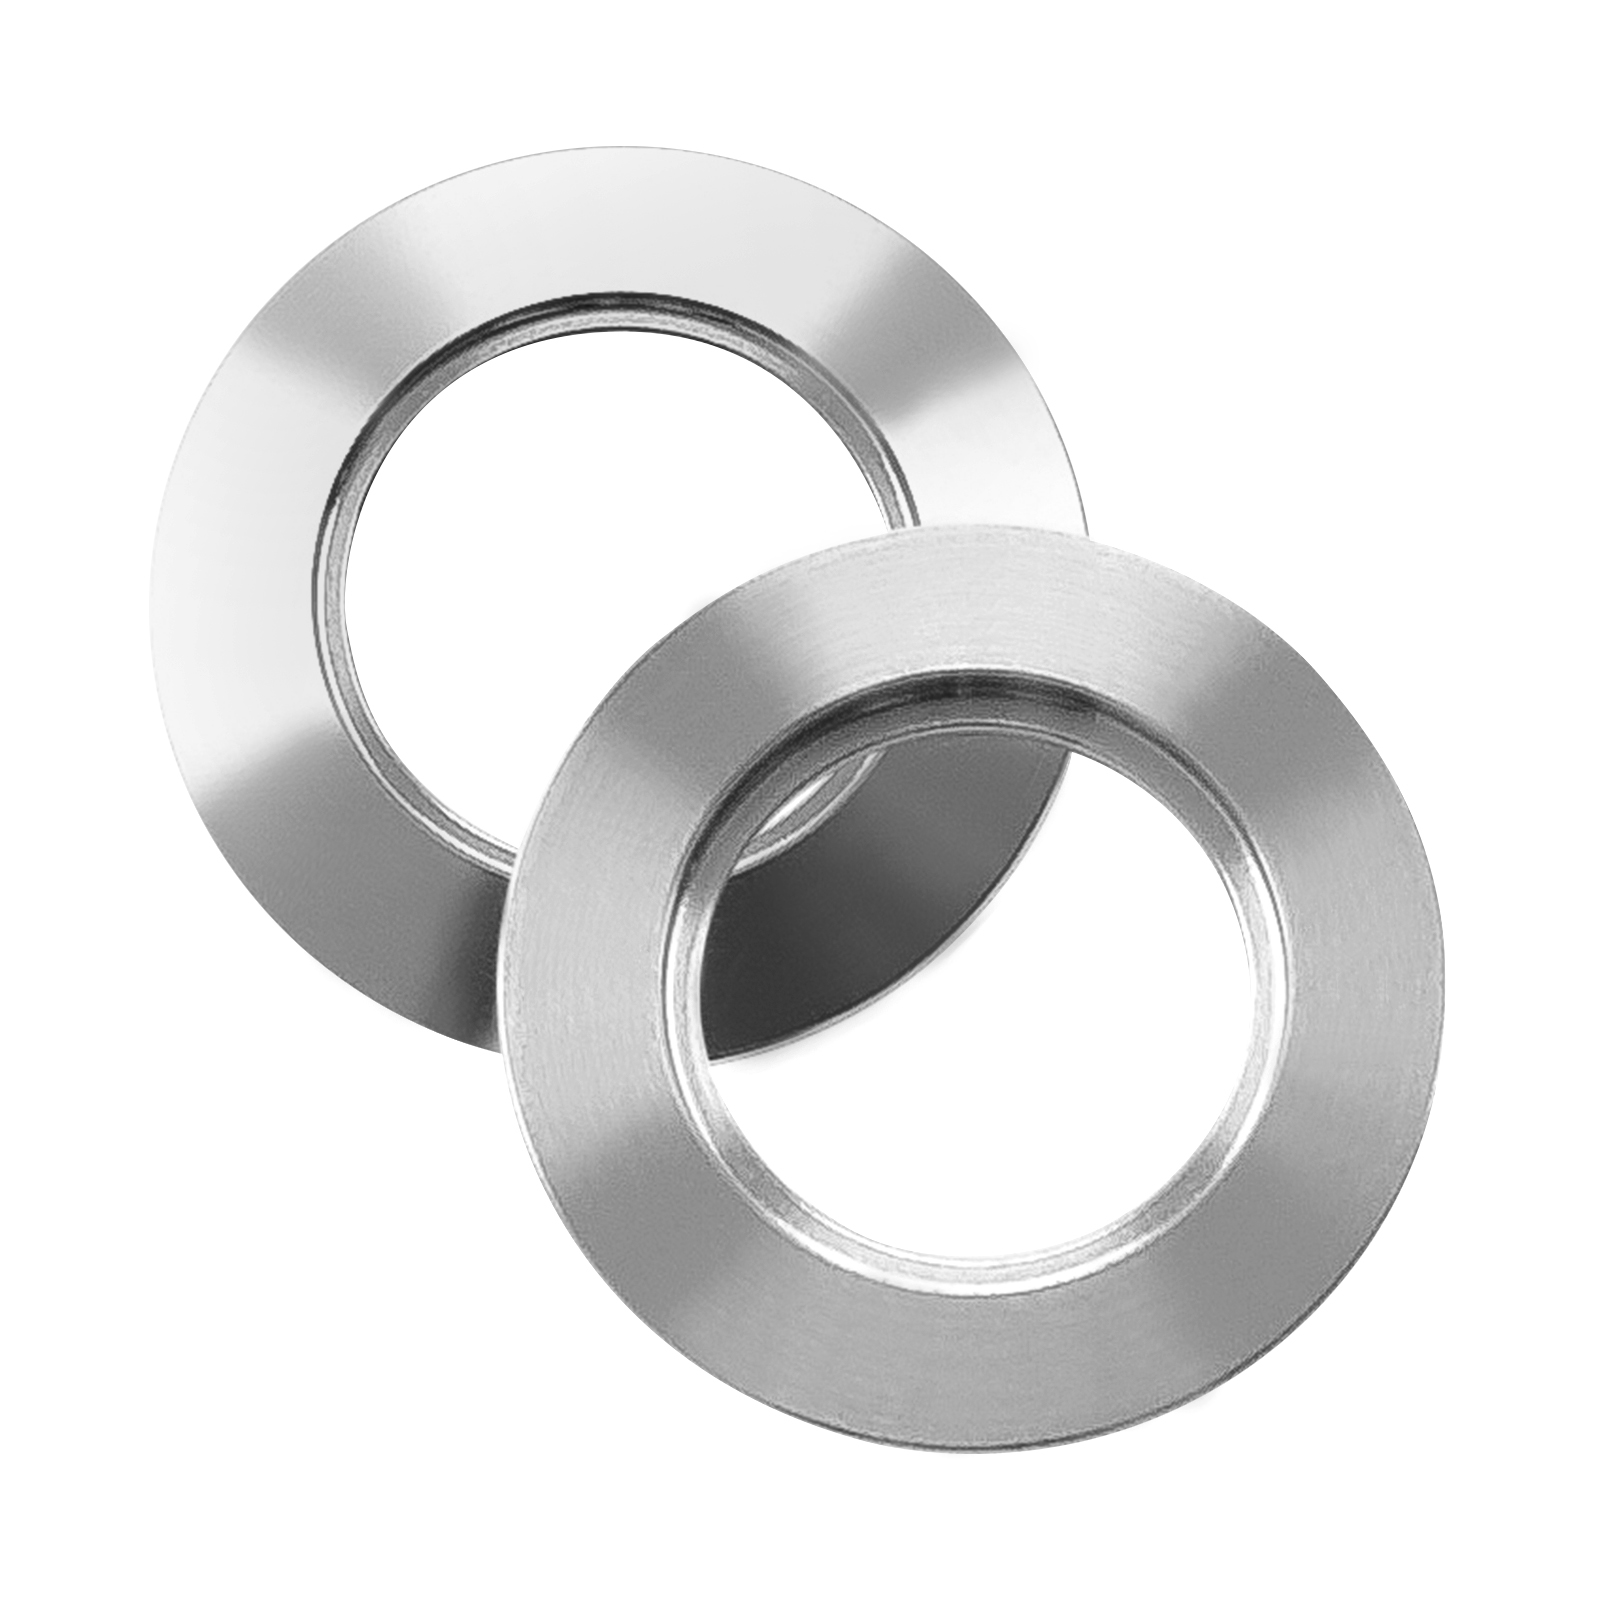 ISO-KF25 Stainless Steel Blank Vacuum Flanges with Bore, 1.1″